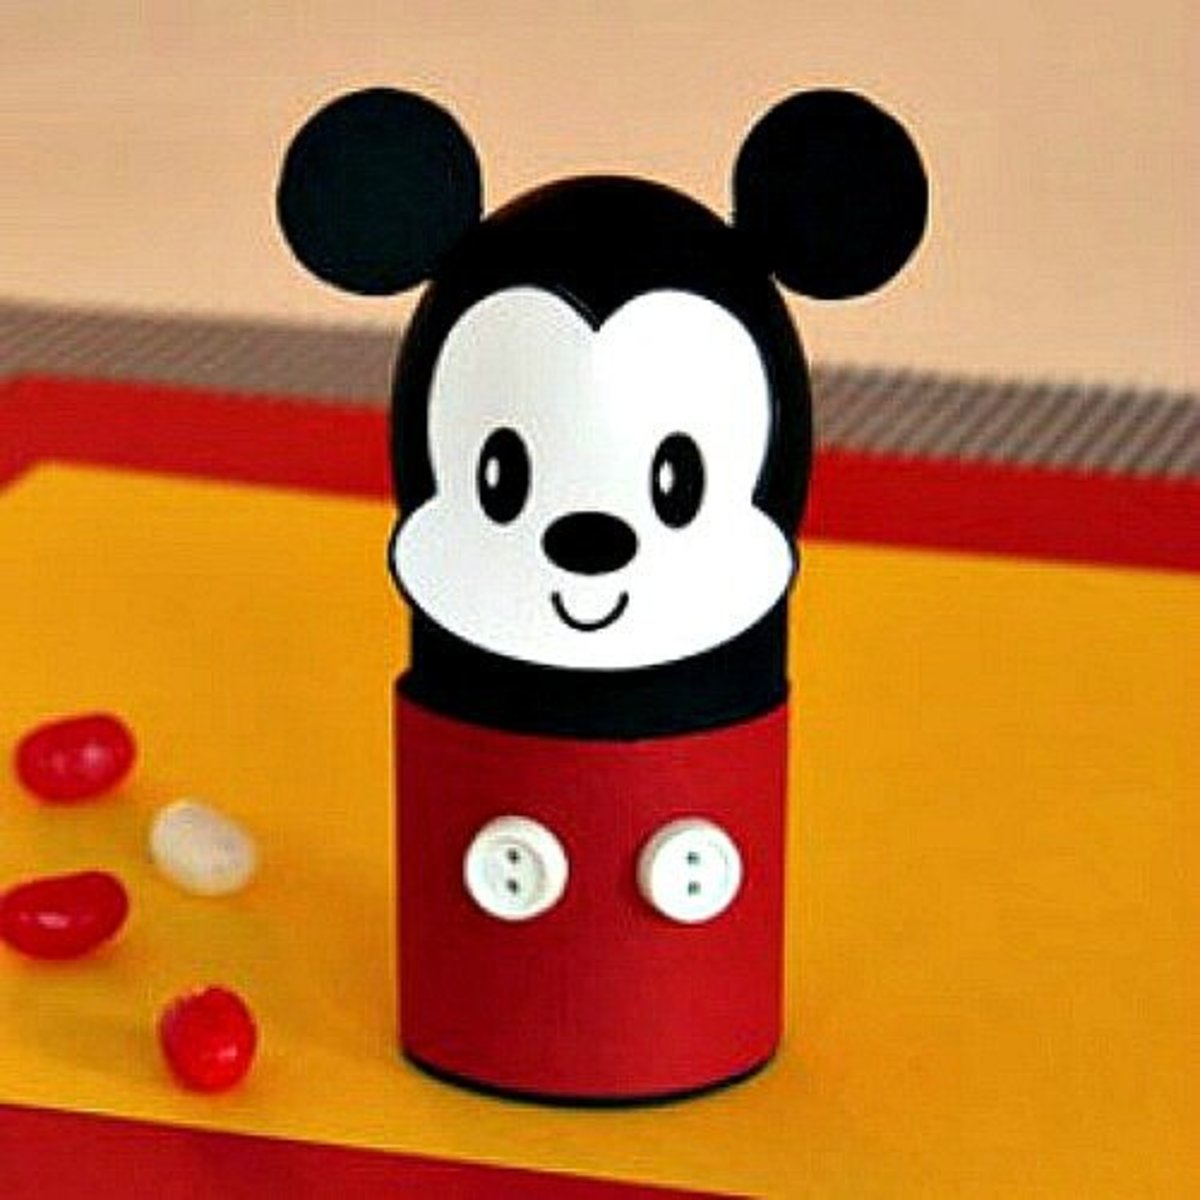 28 Fun and Creative Mouse Crafts